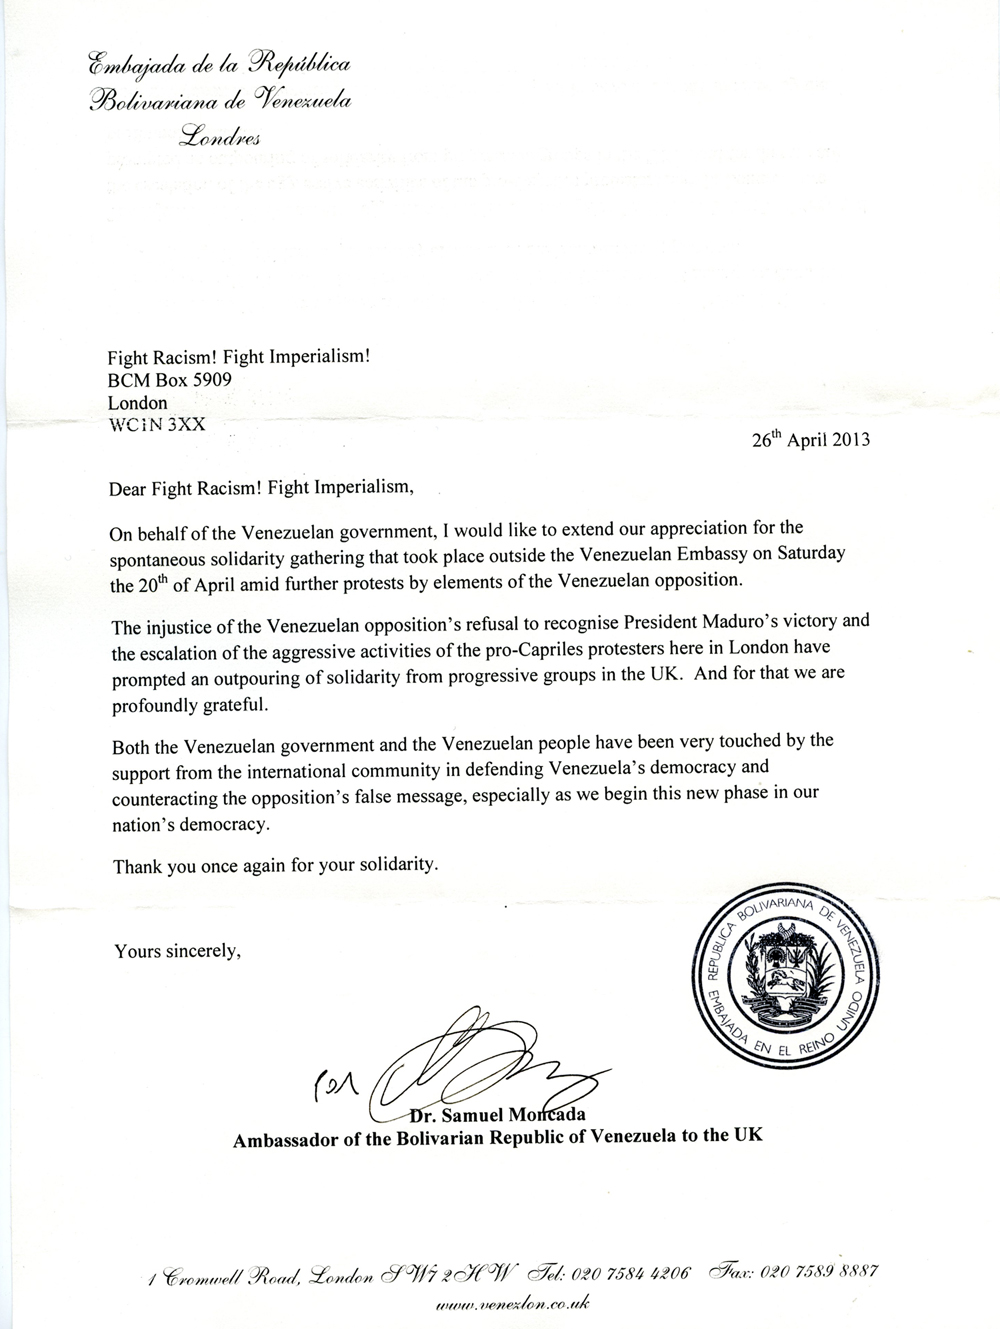 Letter from the Venezuelan embassy